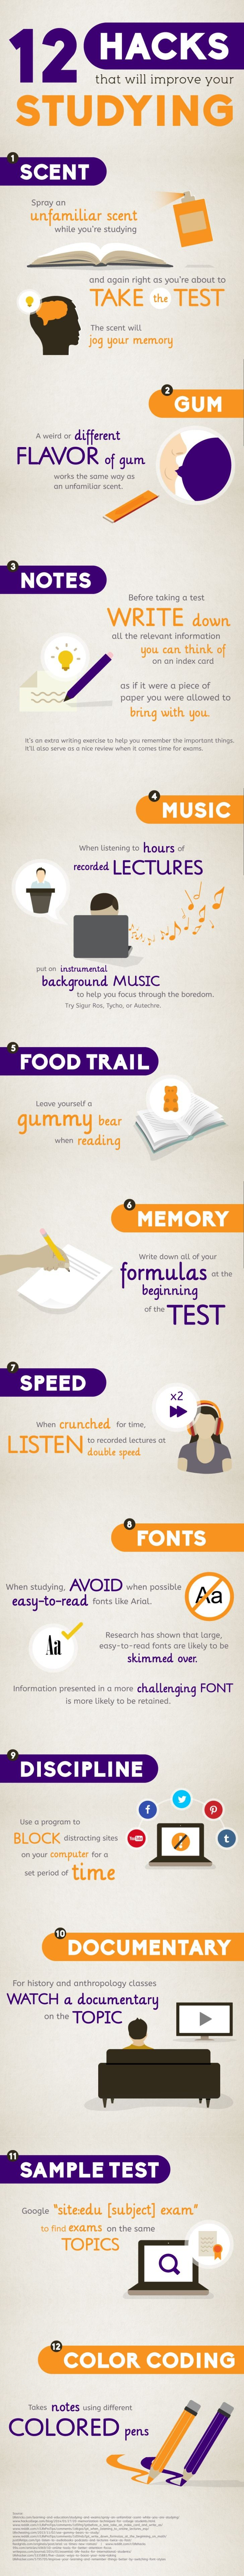 The 12 Hacks That Will Improve Your Studying Infographic Present A Fun List  Of Hacks That Can Help You Improve Study Habits And Will Help You Study  Smarter. Part 76